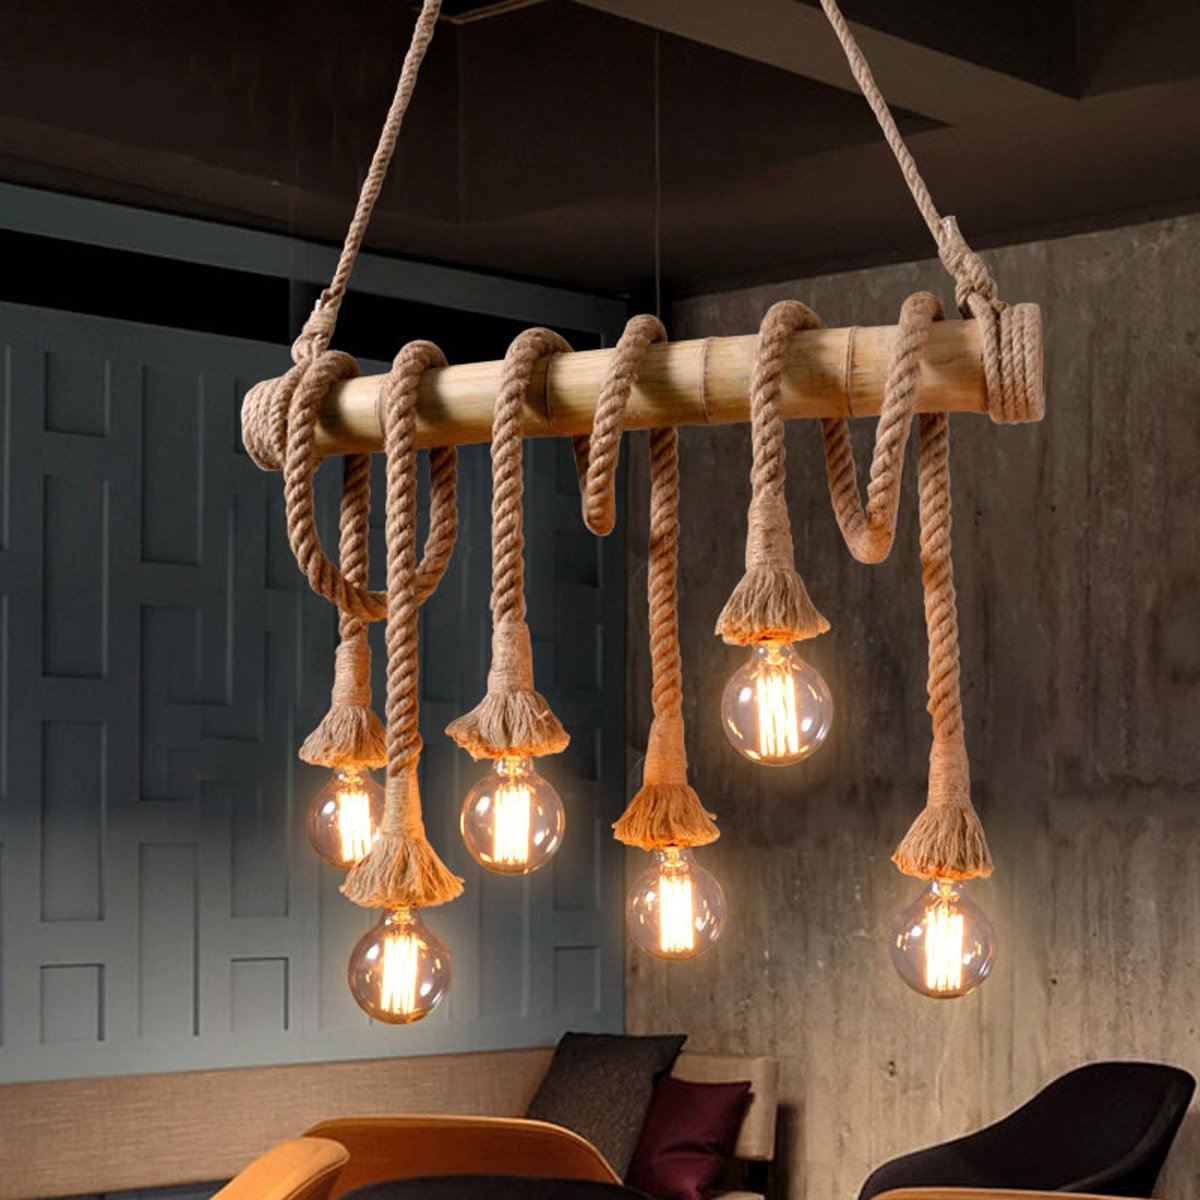 keaton palecek dear shop abaca everly pendant rope product lighting